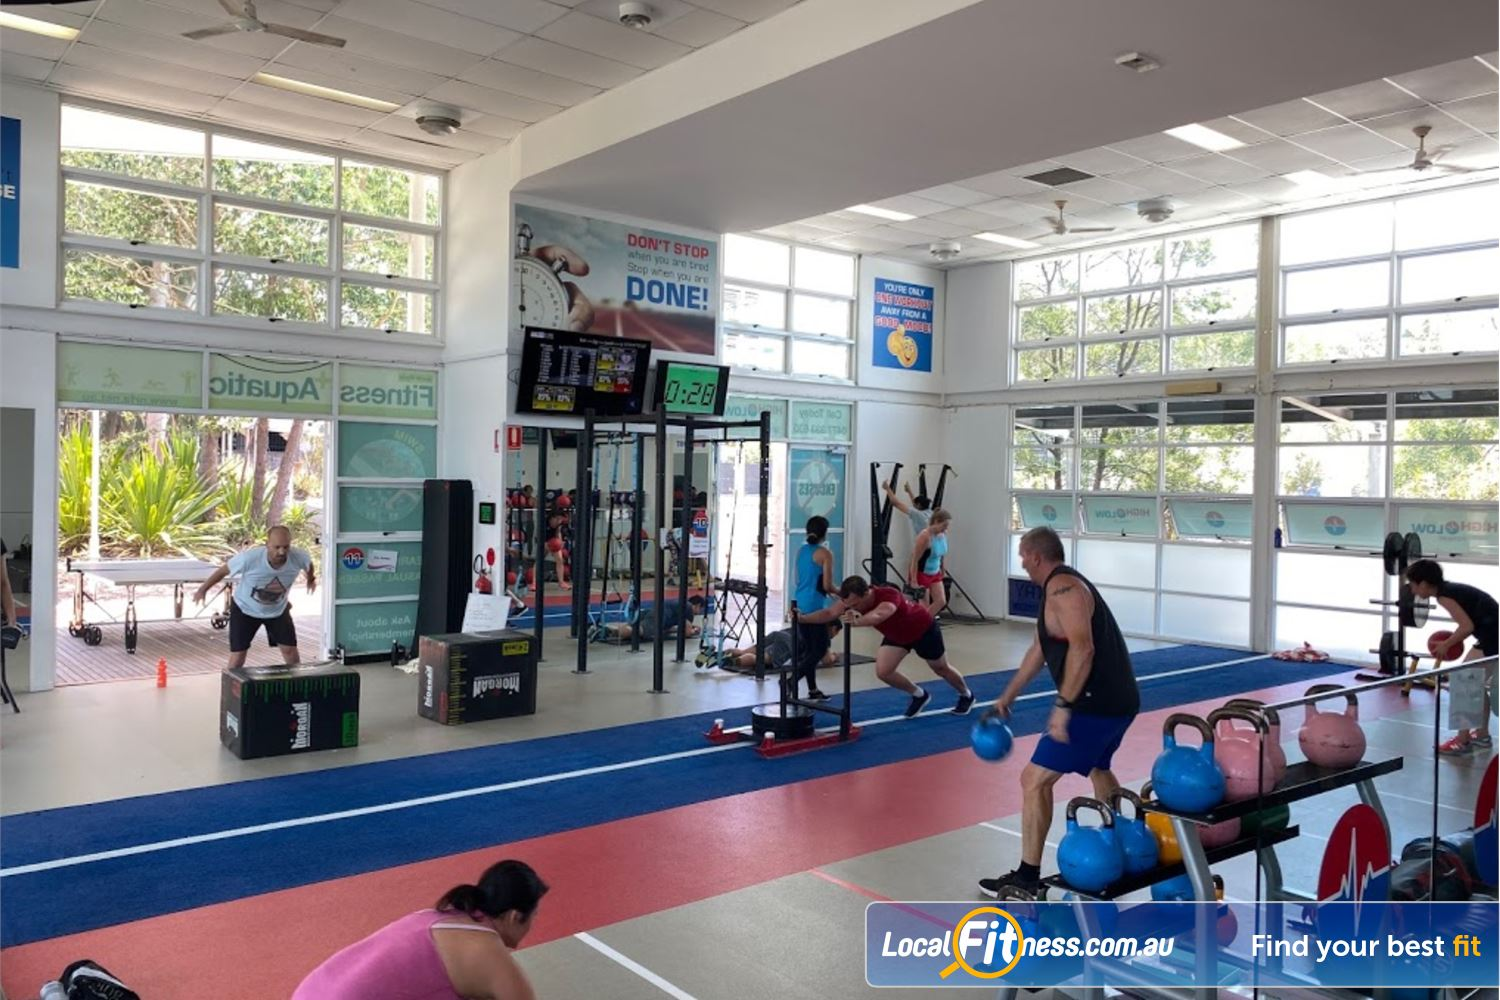 North Ryde Fitness & Aquatic North Ryde Our North Ryde HIIT gym provides a full range of HIIT classes.